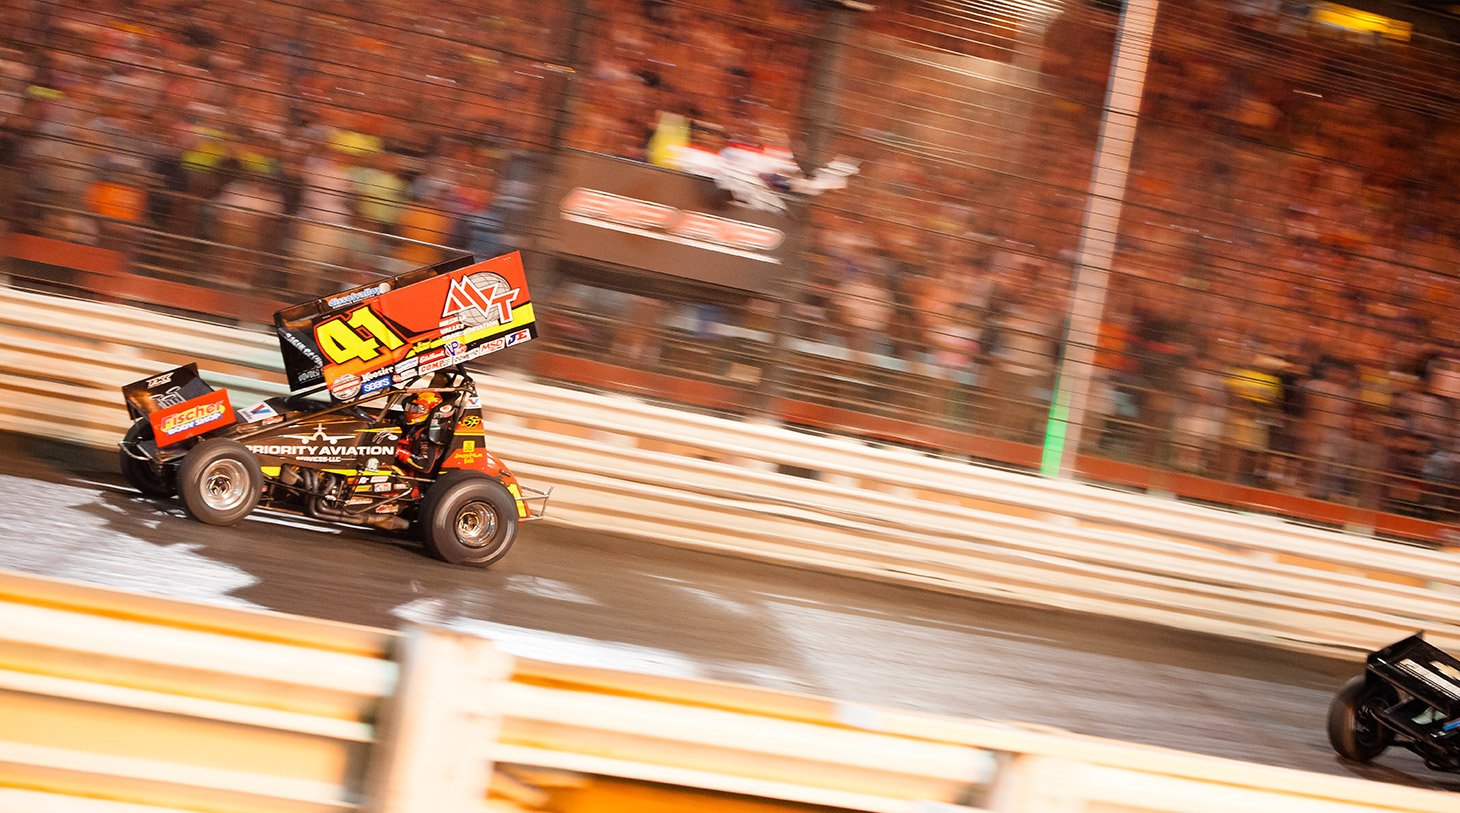 Jason Johnson crosses the finish line to win The 2016 Knoxville Nationals